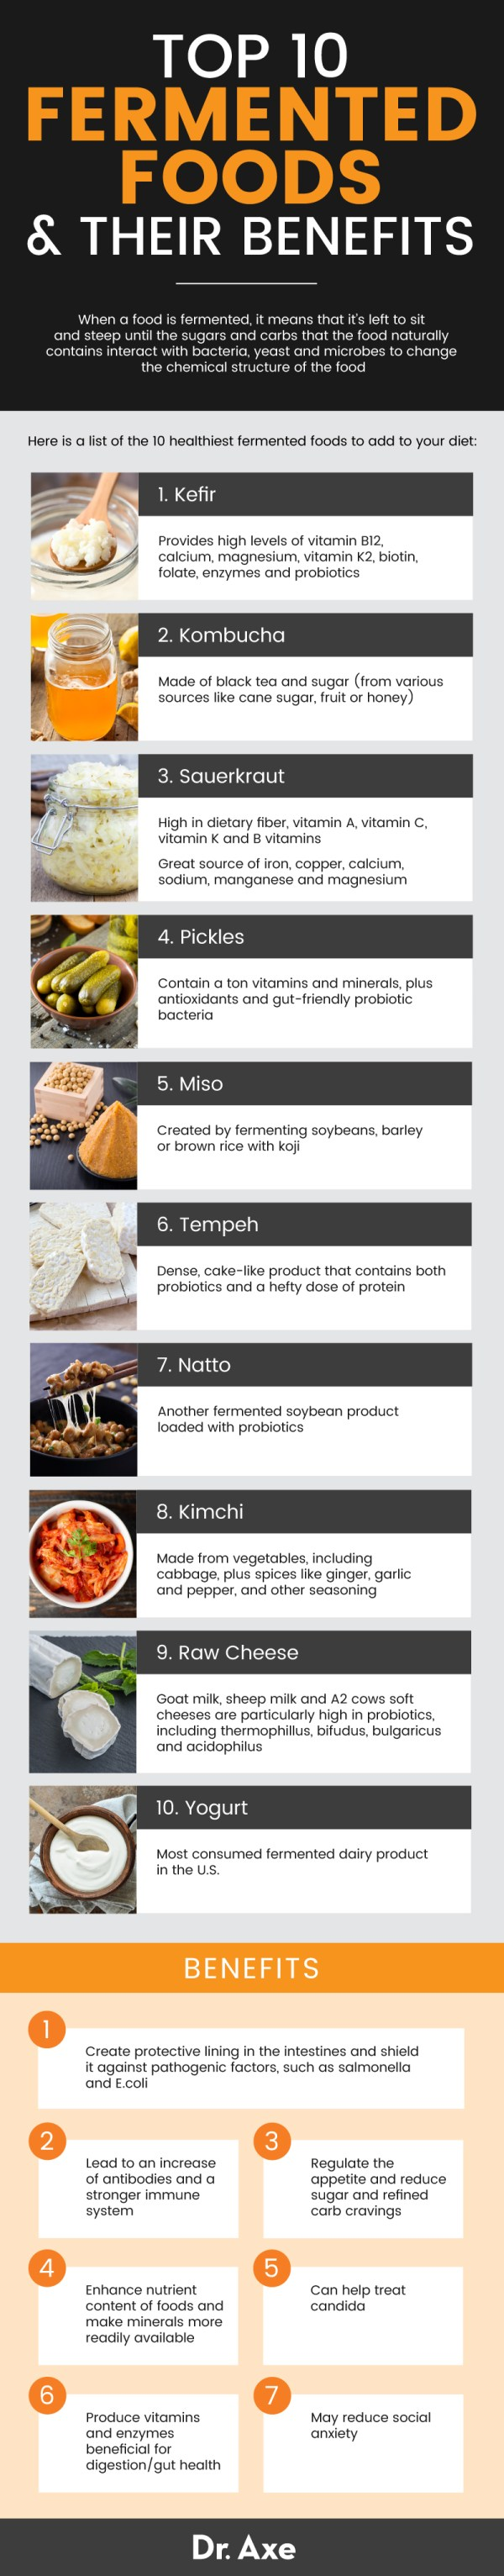 Fermented foods - Dr. Axe